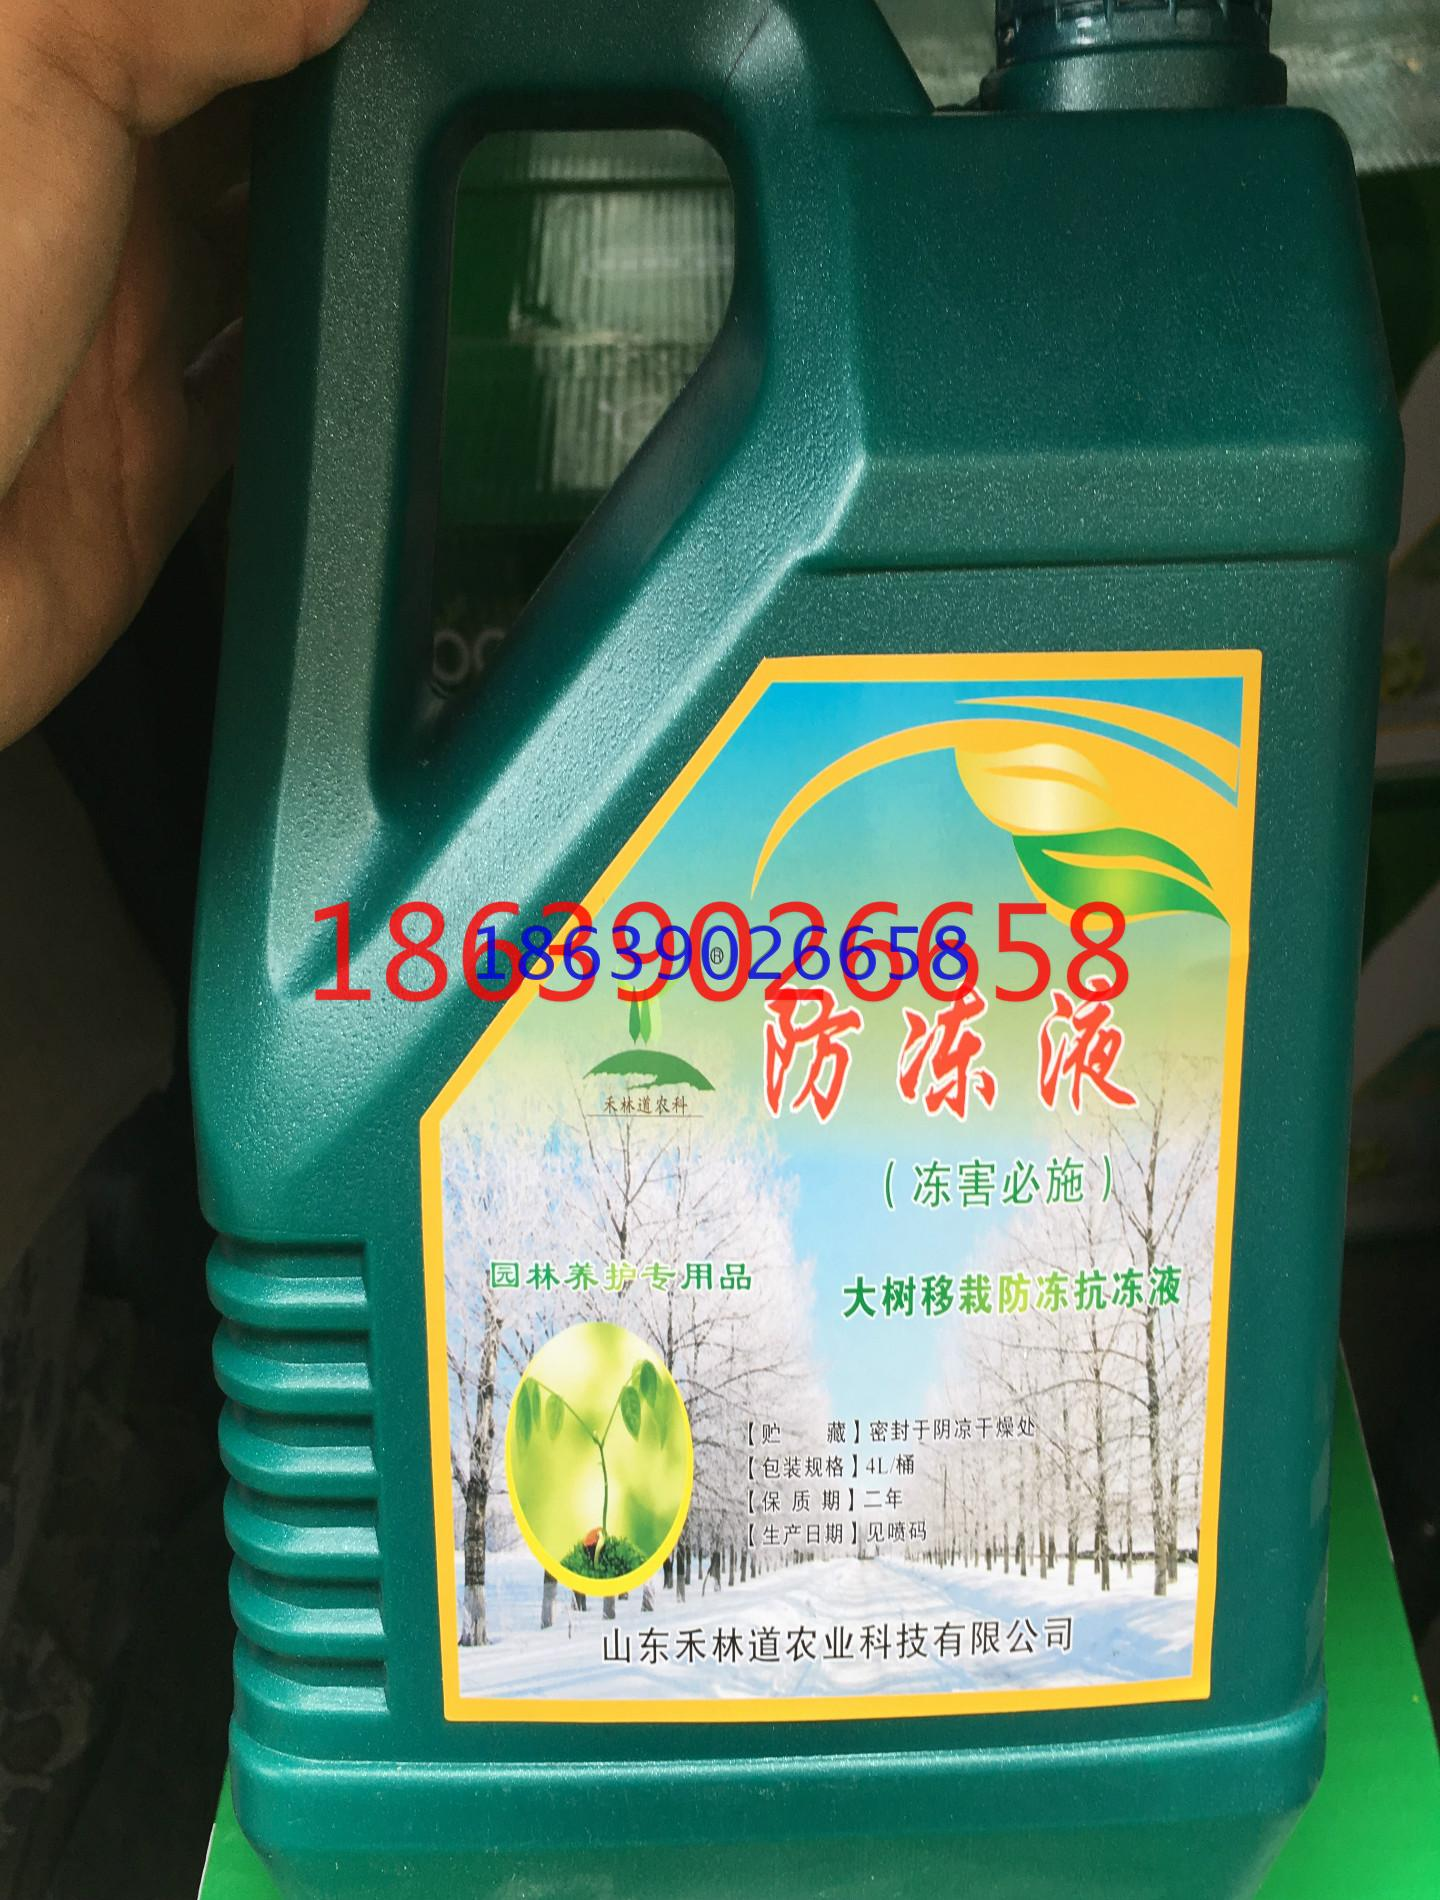 A antifreeze plant antifreeze, red plant antifreeze, anti boiling, anti scaling, corrosion resistance - degree